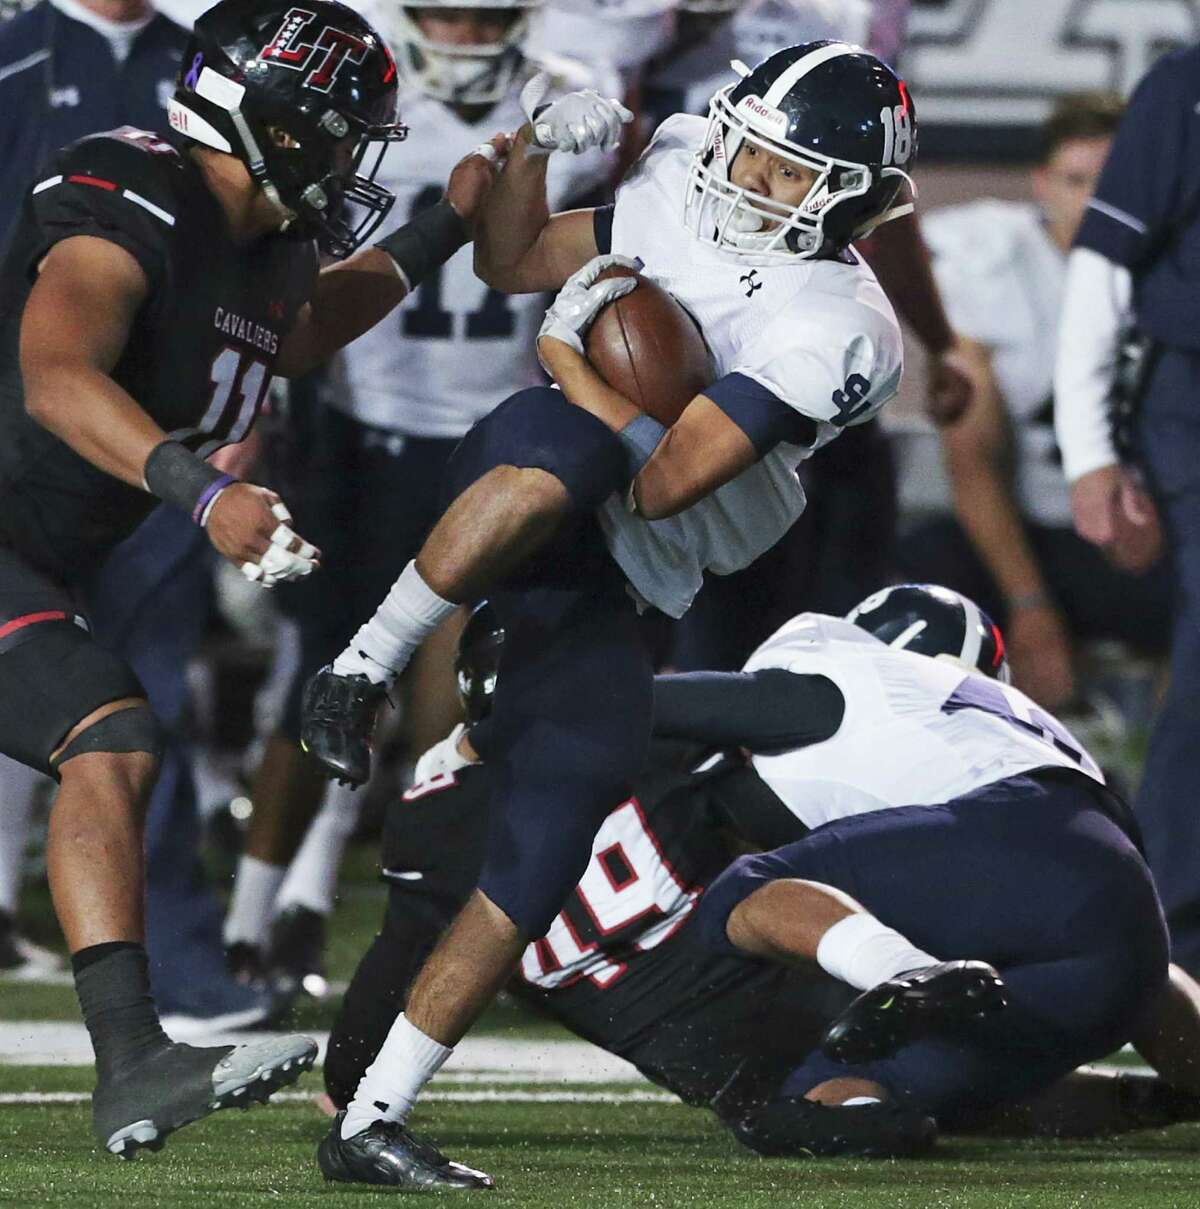 Josh Dillon pivots away from tacklers on a long gain in the second half as Smithson Valley plays Lake Travis in the Class 6A Division I second round playoffs at Bobcat Stadium in San Marcos on November 18, 2016.